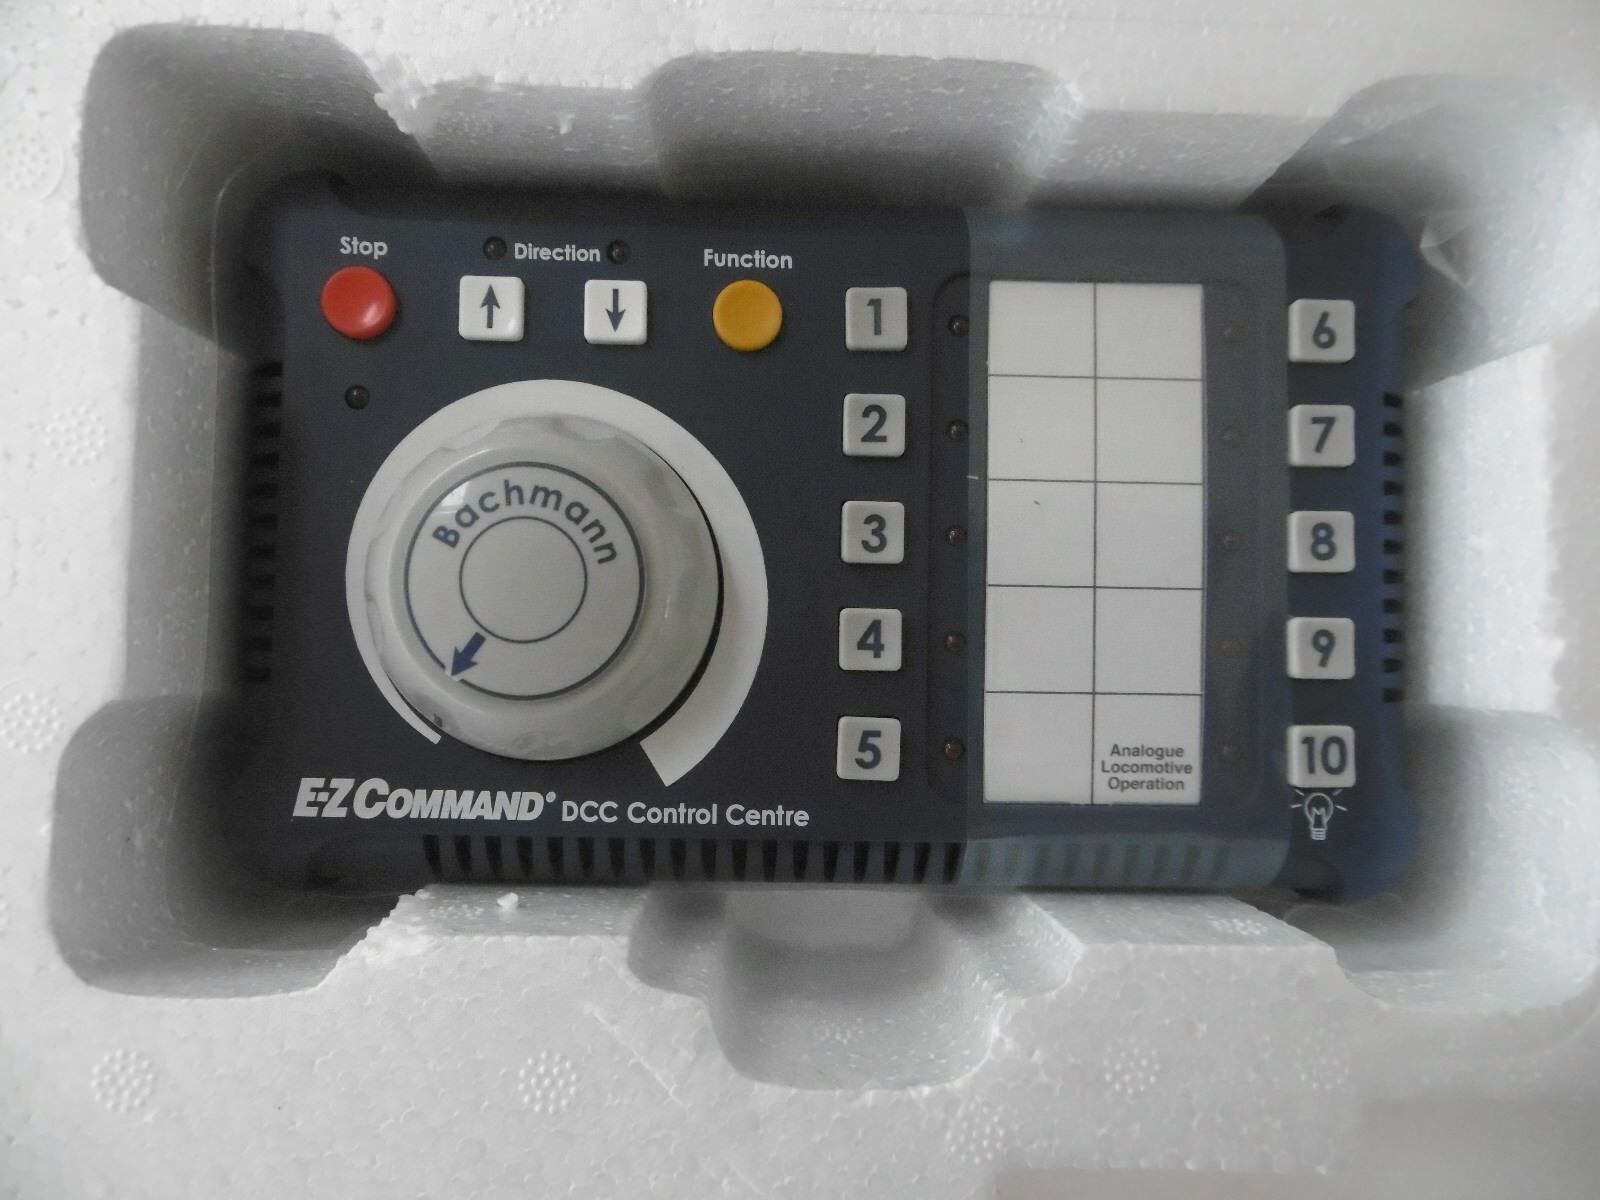 Bachuomon 36501 EZ Comuomod Digital Train Control System nuovo OO connector SAVE £